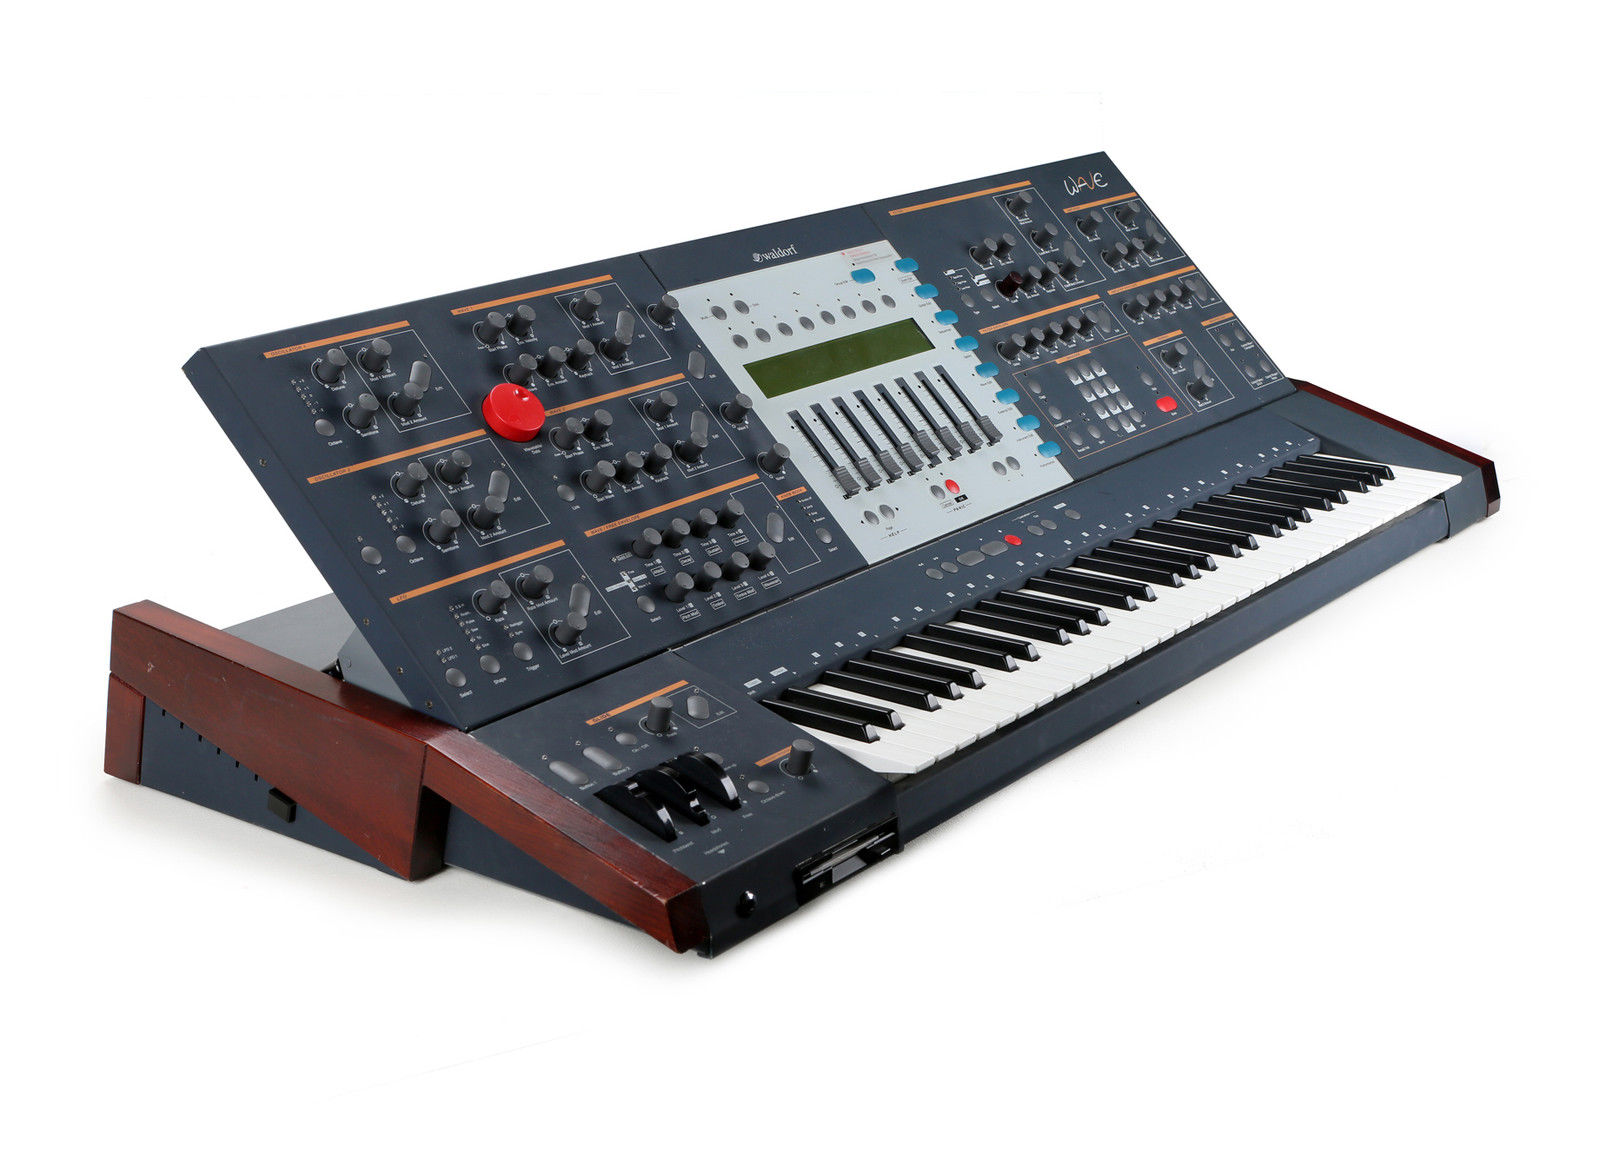 Sexiest Synth Gearslutz Xfmr Diy Projects Didn39t You Used To Circuitbend I Know This Is All Subjective Beauty In The Eye Of Beholder And Stuff But Man Guys Are Posting Some Ugly Ss Synths A Sexy